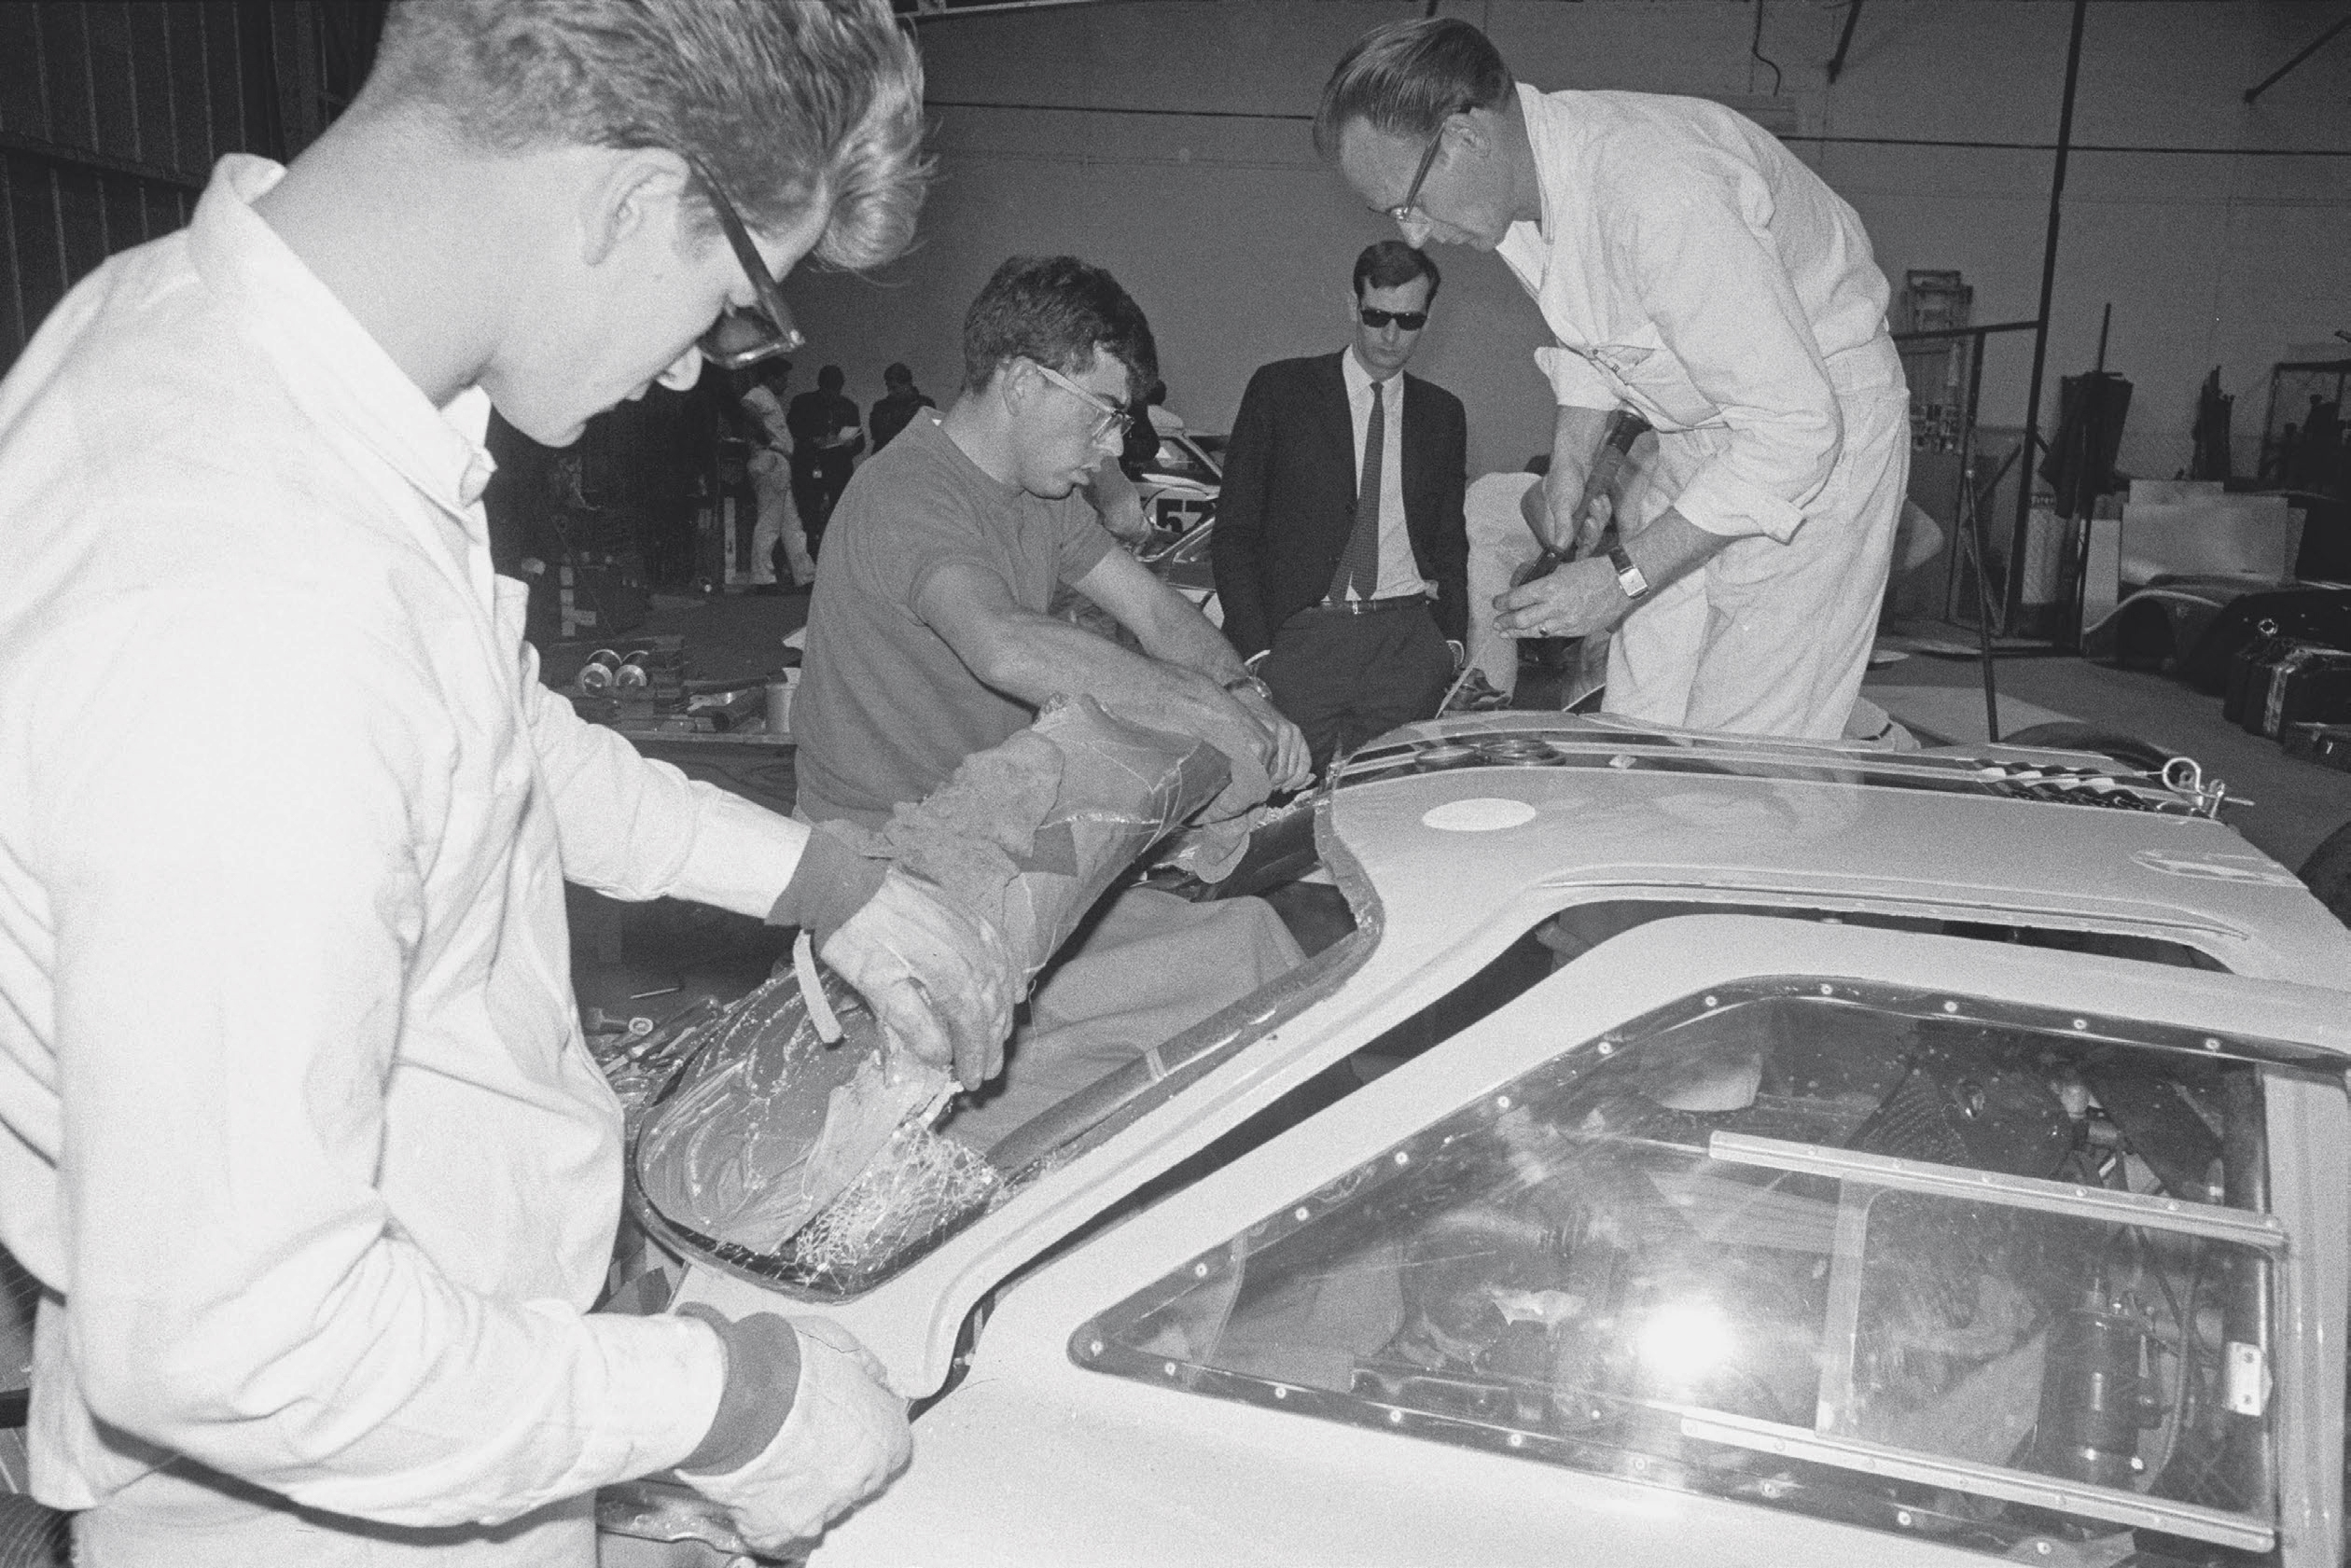 The windshields in the Fords started cracking as soon as practice began. An extra-hard temper had made the glass too brittle, and Dow Corning produced replacements on an emergency basis. Here, Gordon Chance, Charlie Agapiou, and Max Kelly (left to right) replace the windshield on the Bruce McLaren/Mark Donohue Mark IV.